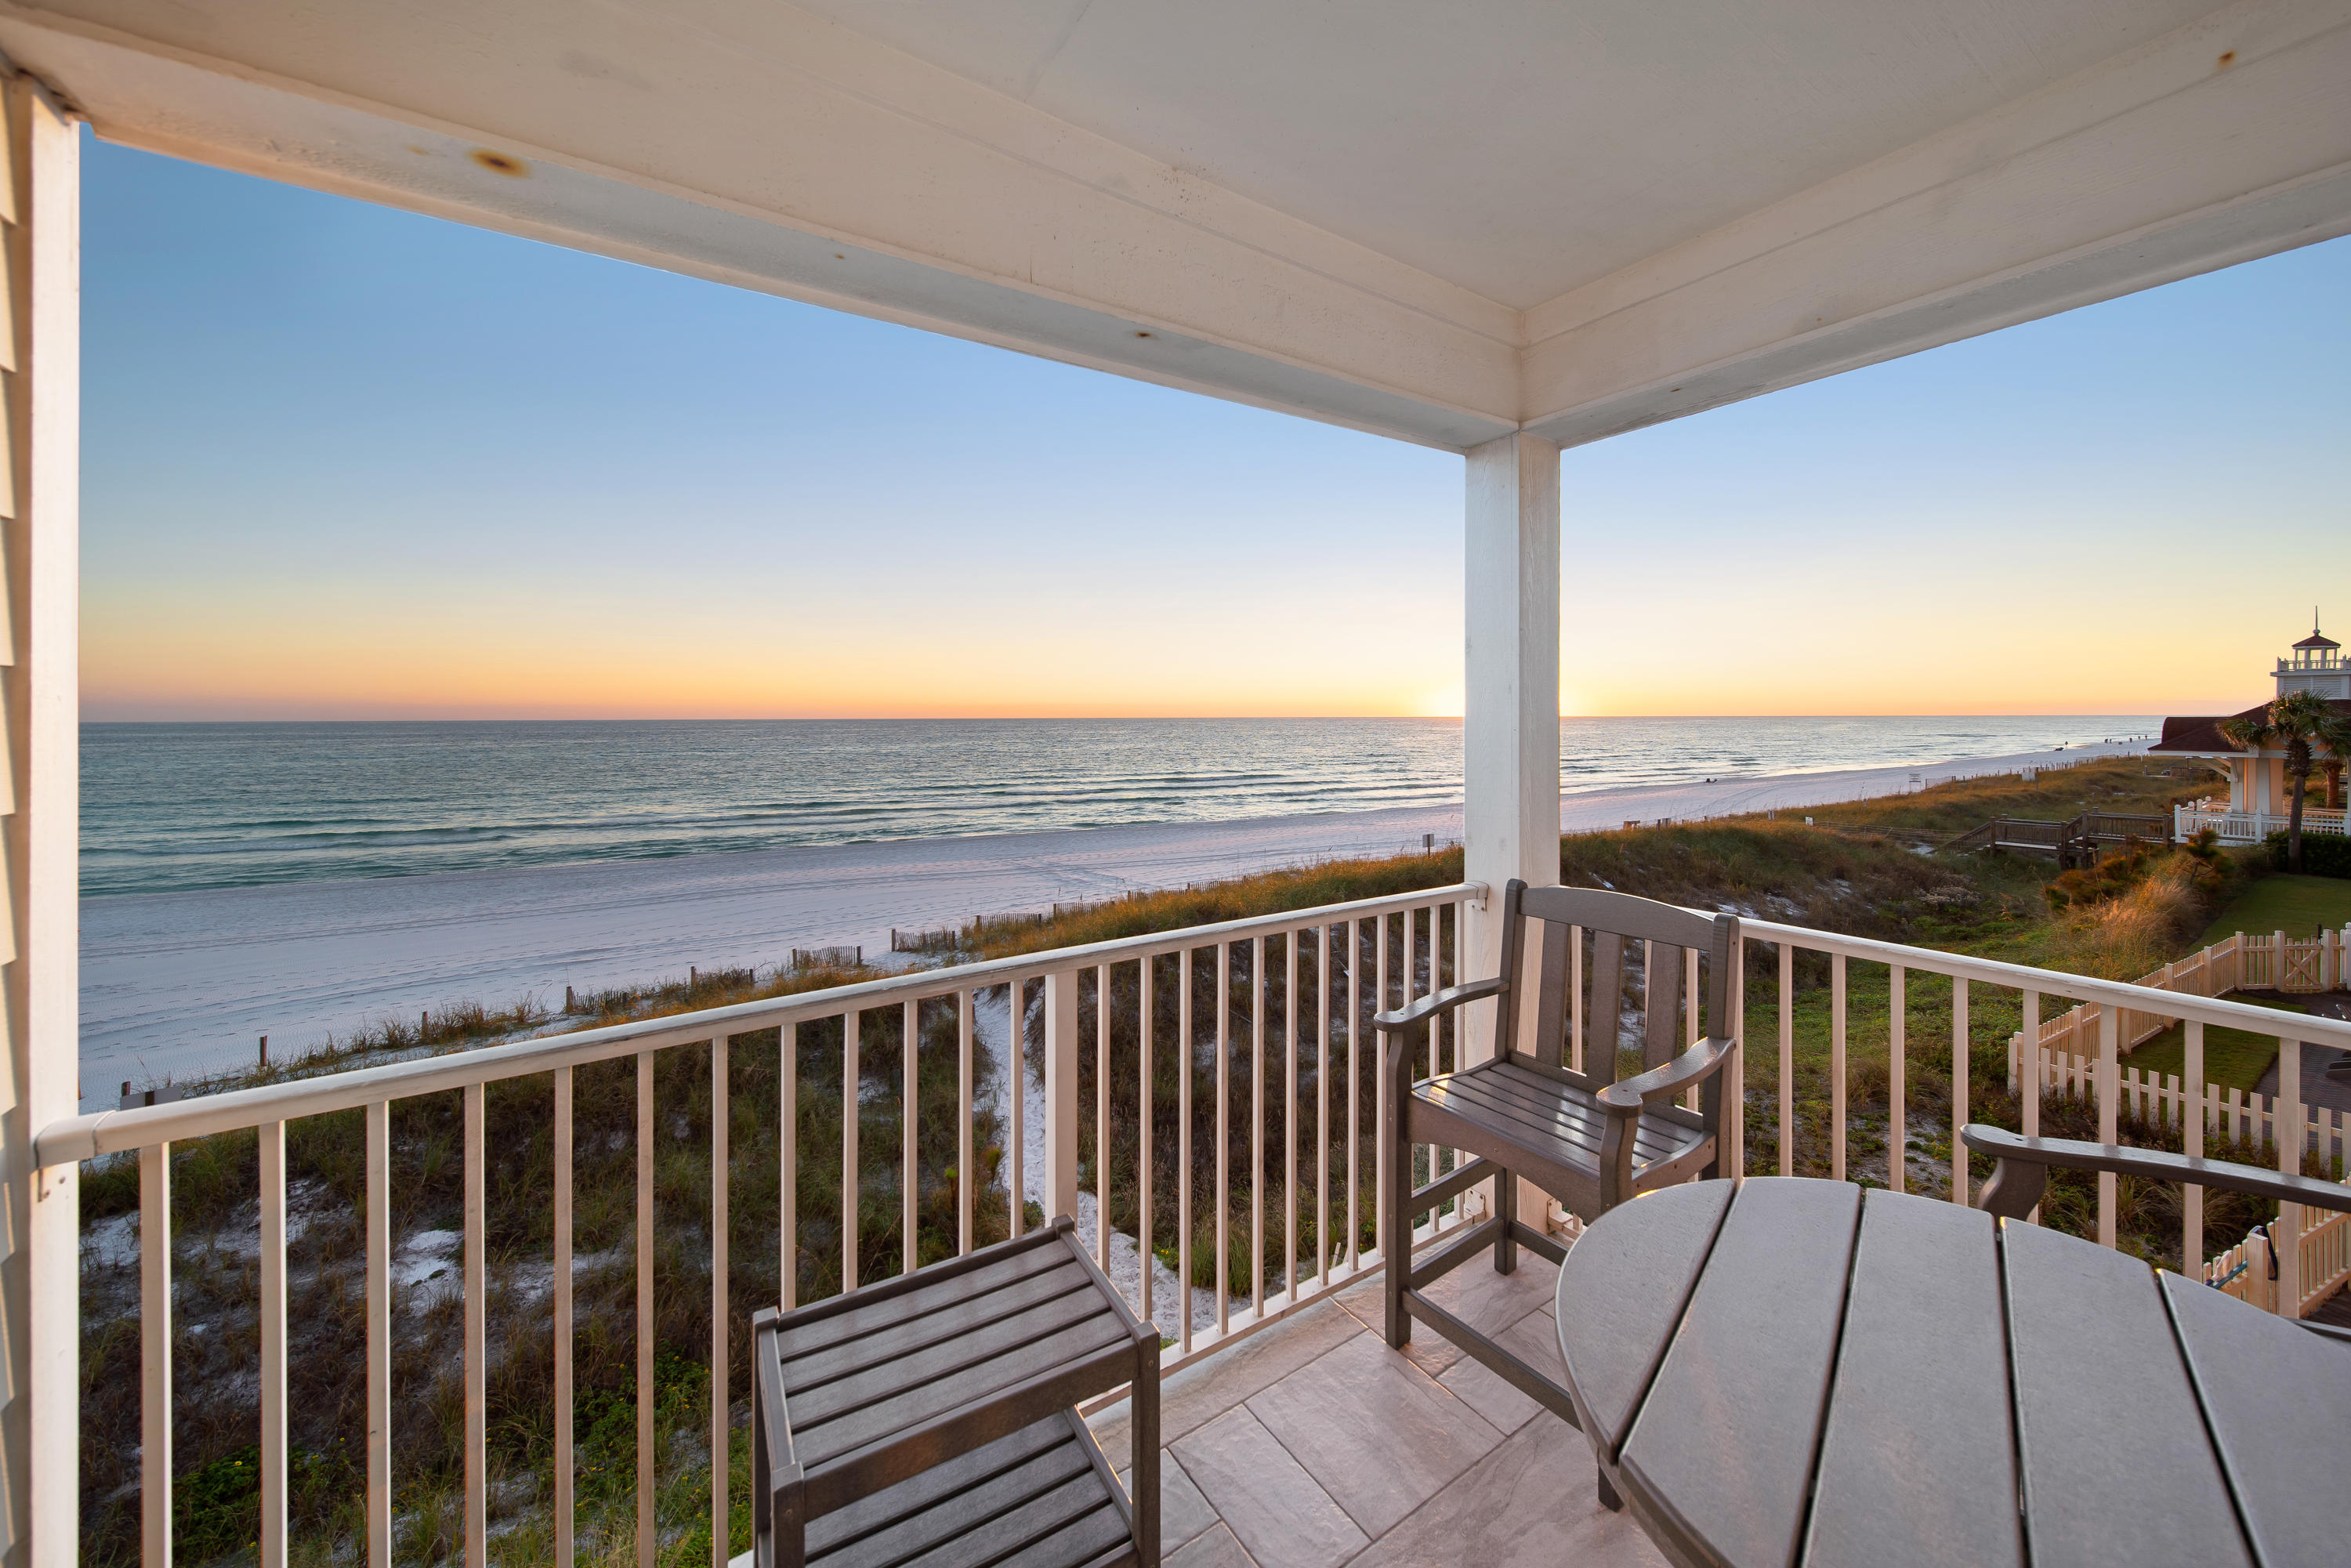 Over $230,000 of rental income on the books for 2021!  This recently renovated, gulf front home with breathtaking views is located in the private gated community of Shipwatch.  The first floor offers a spacious layout with the main-living area and dining area. The king suite is also on the first floor with french doors leading to the back patio and gorgeous views of the gulf. The second floor boasts a second king suite with a shared bath, living area, and second kitchen. On the third floor is yet another king suite. Each floor has its own deck and the courtyard features a splash pool, grill area and lounging space. The carriage house includes an open floor plan large enough for a king and queen bed as well as a wet bar and private bath. This home is located just a few minutes of the Silver Sands outlet mall and many other restaurant and shopping options.  Call today to arrange your private showing!